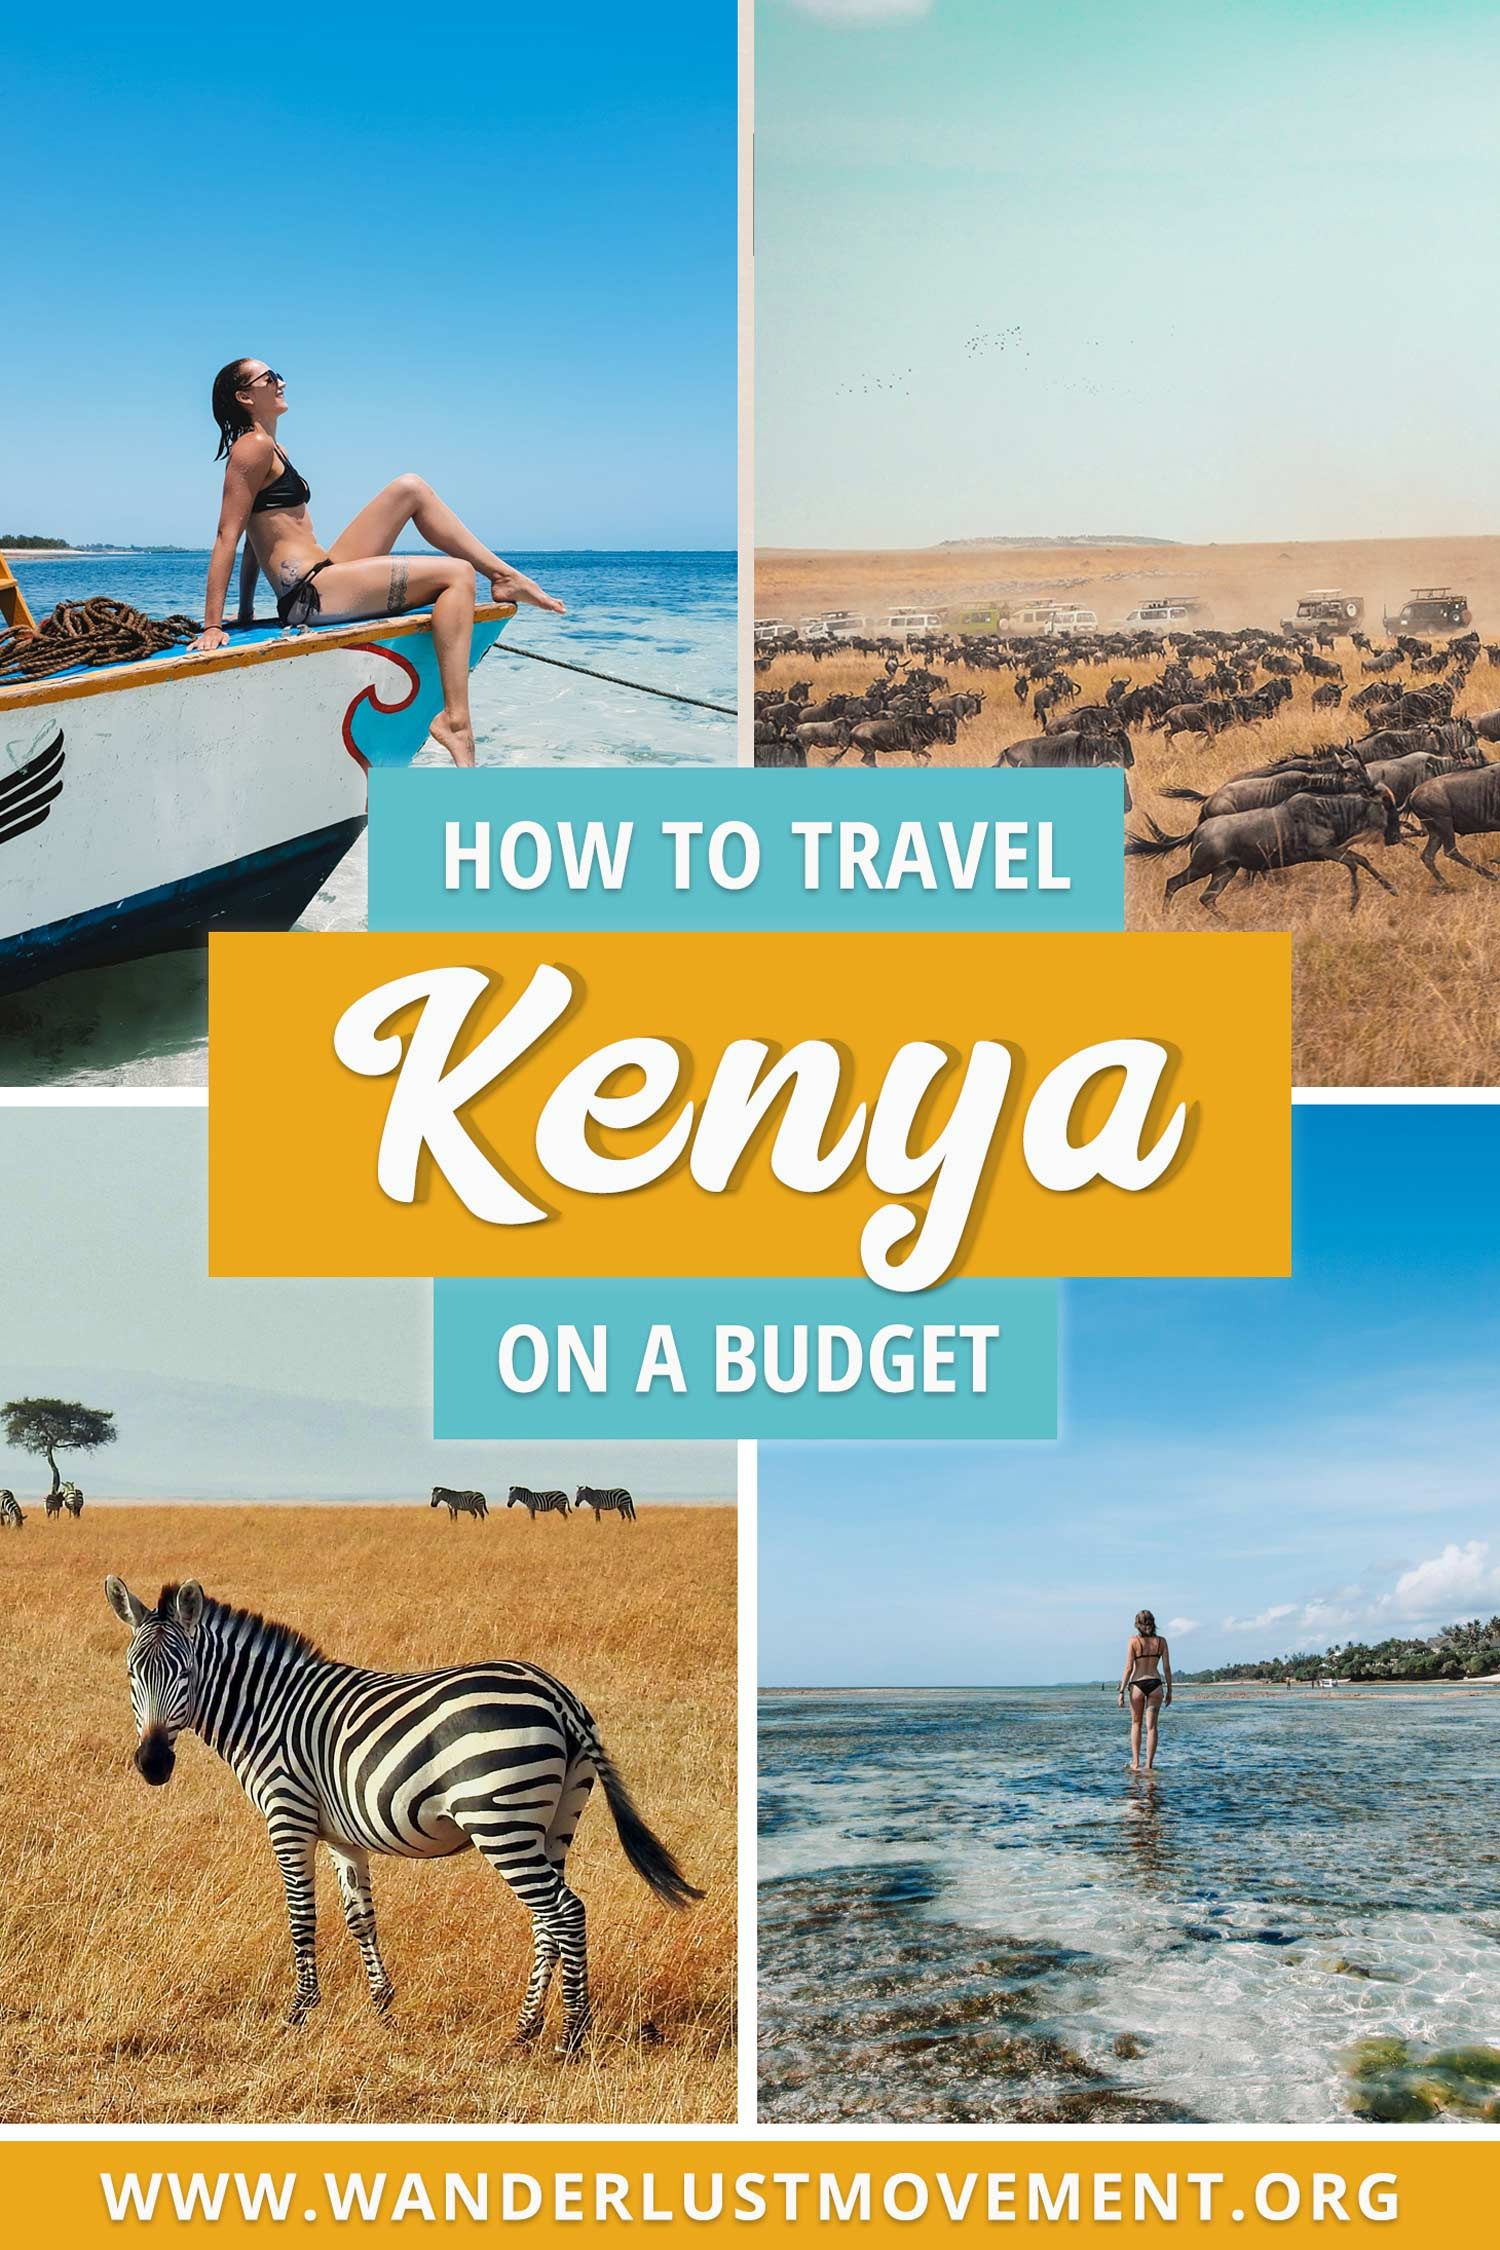 Wie man Kenia mit kleinem Budget reist   – Wanderlust Movement | South African Travel Blogger